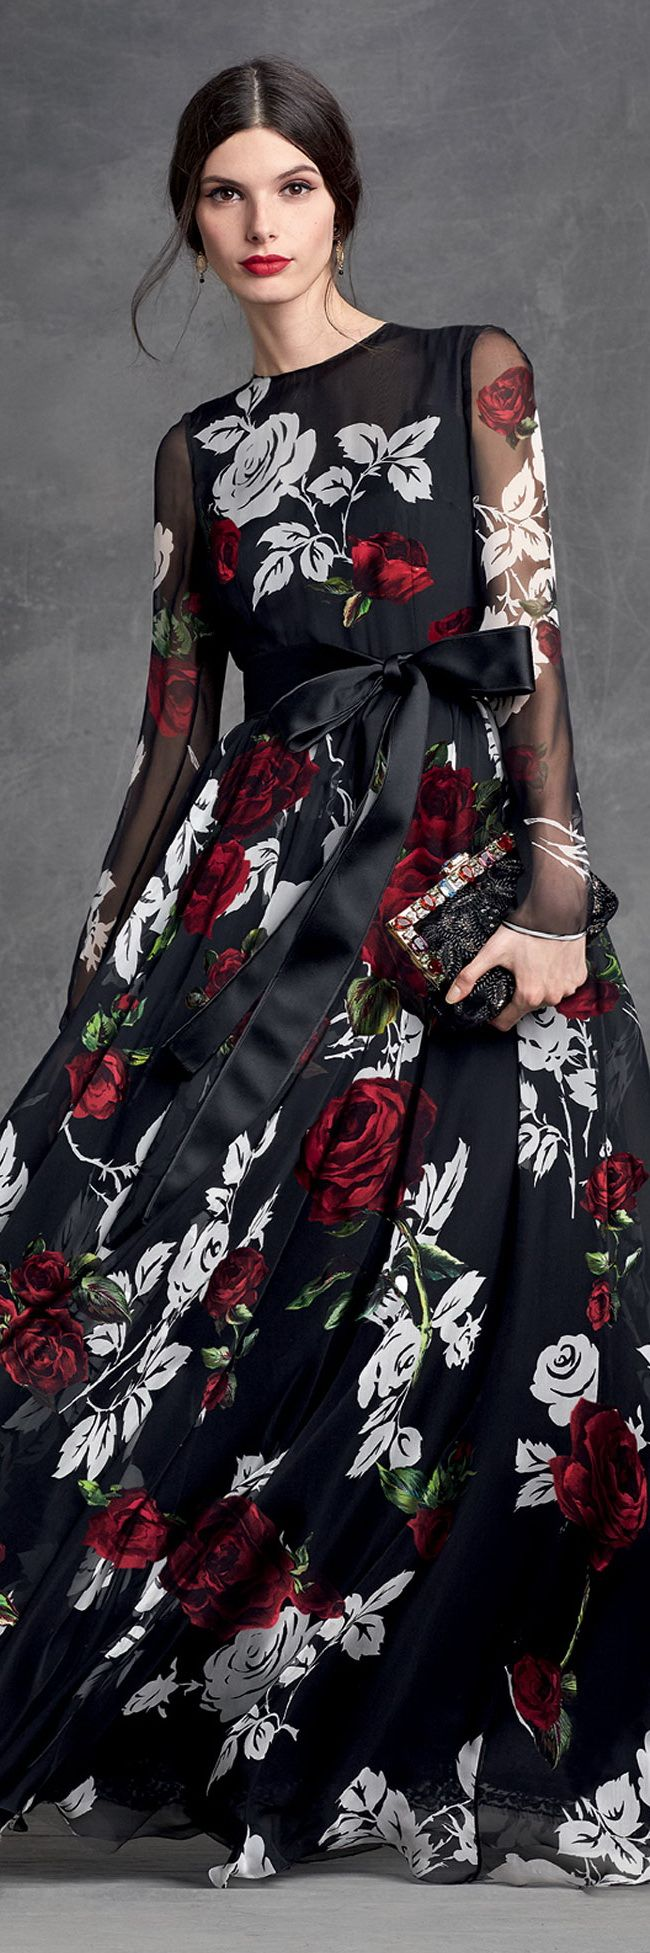 Dolce & Gabbana, Winter 2016.                                                                                                                                                                                 More